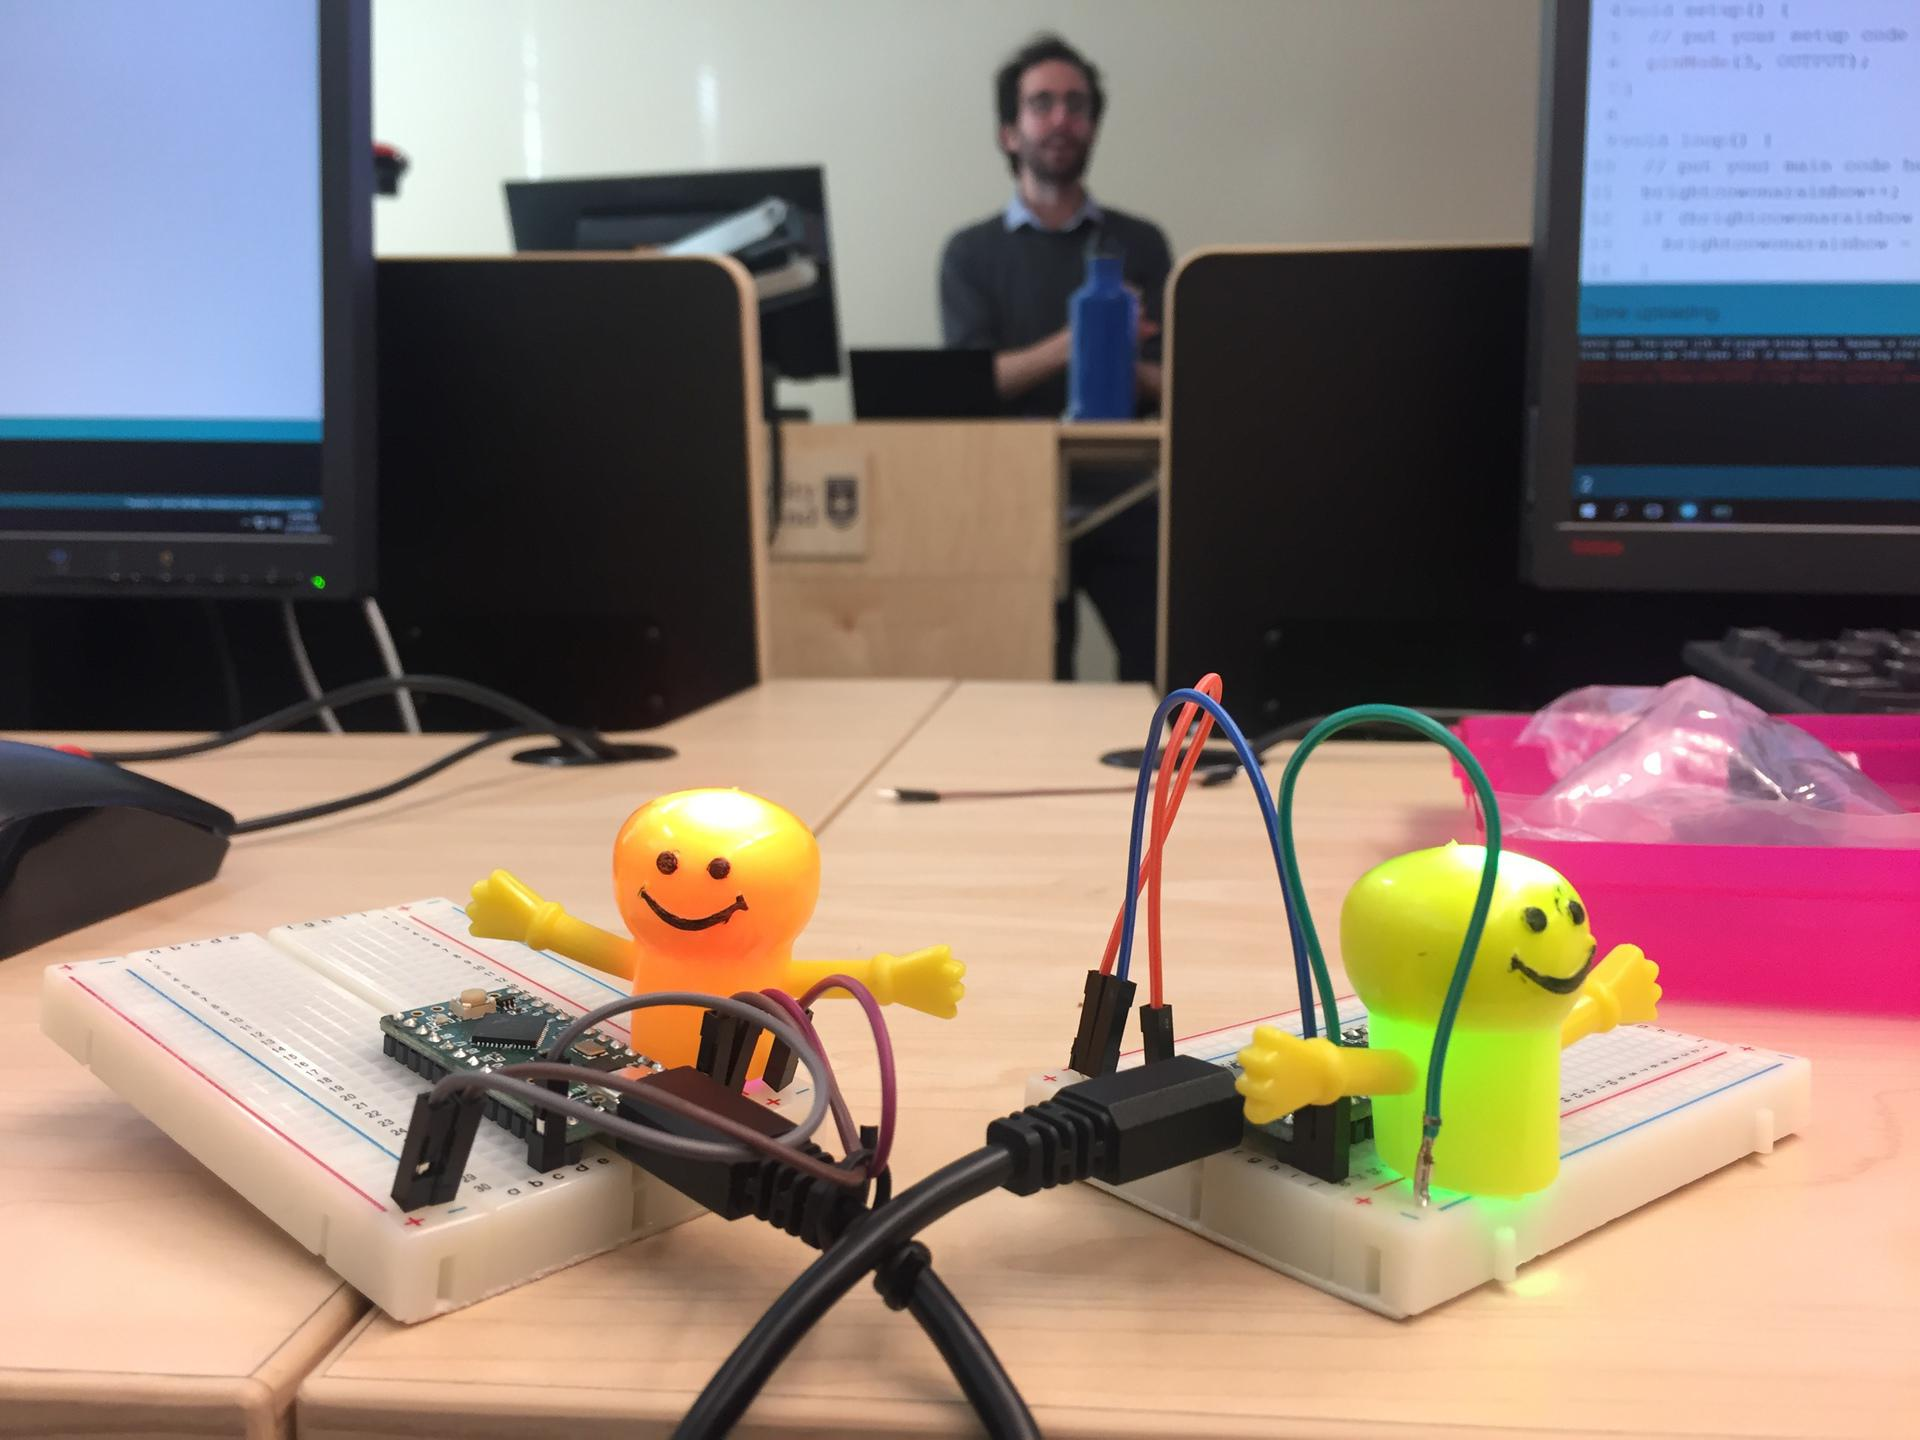 George Mandis teaching an Arduino class with cute little smiley-face finger puppets covering RGB LEDs